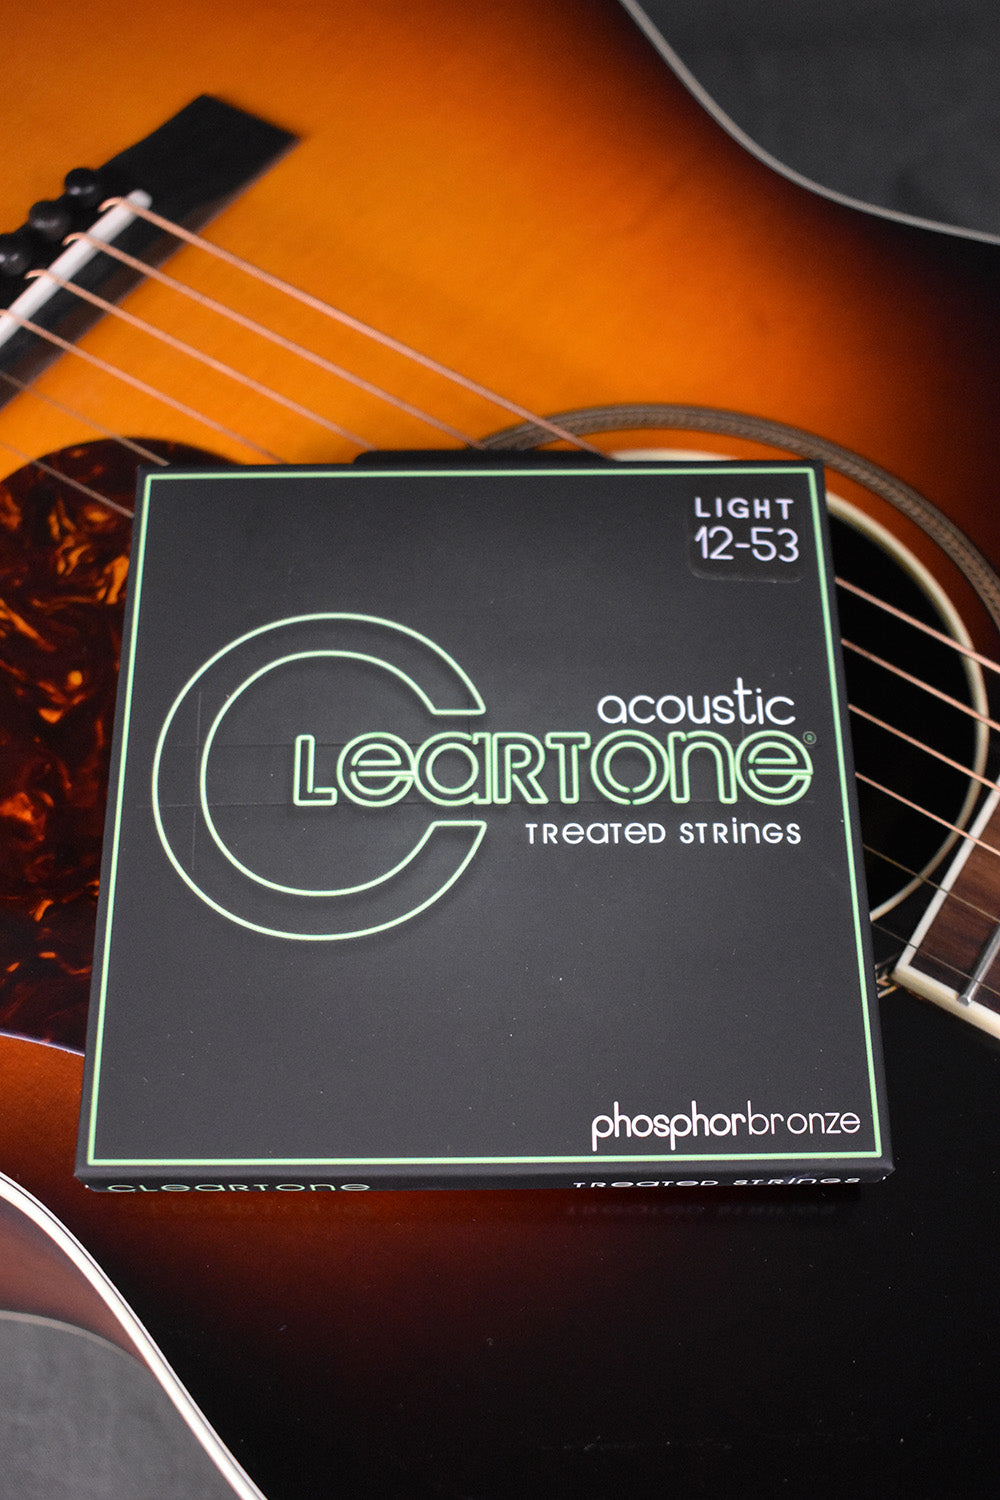 Cleartone Acoustic Phosphor Bronze Treated Strings